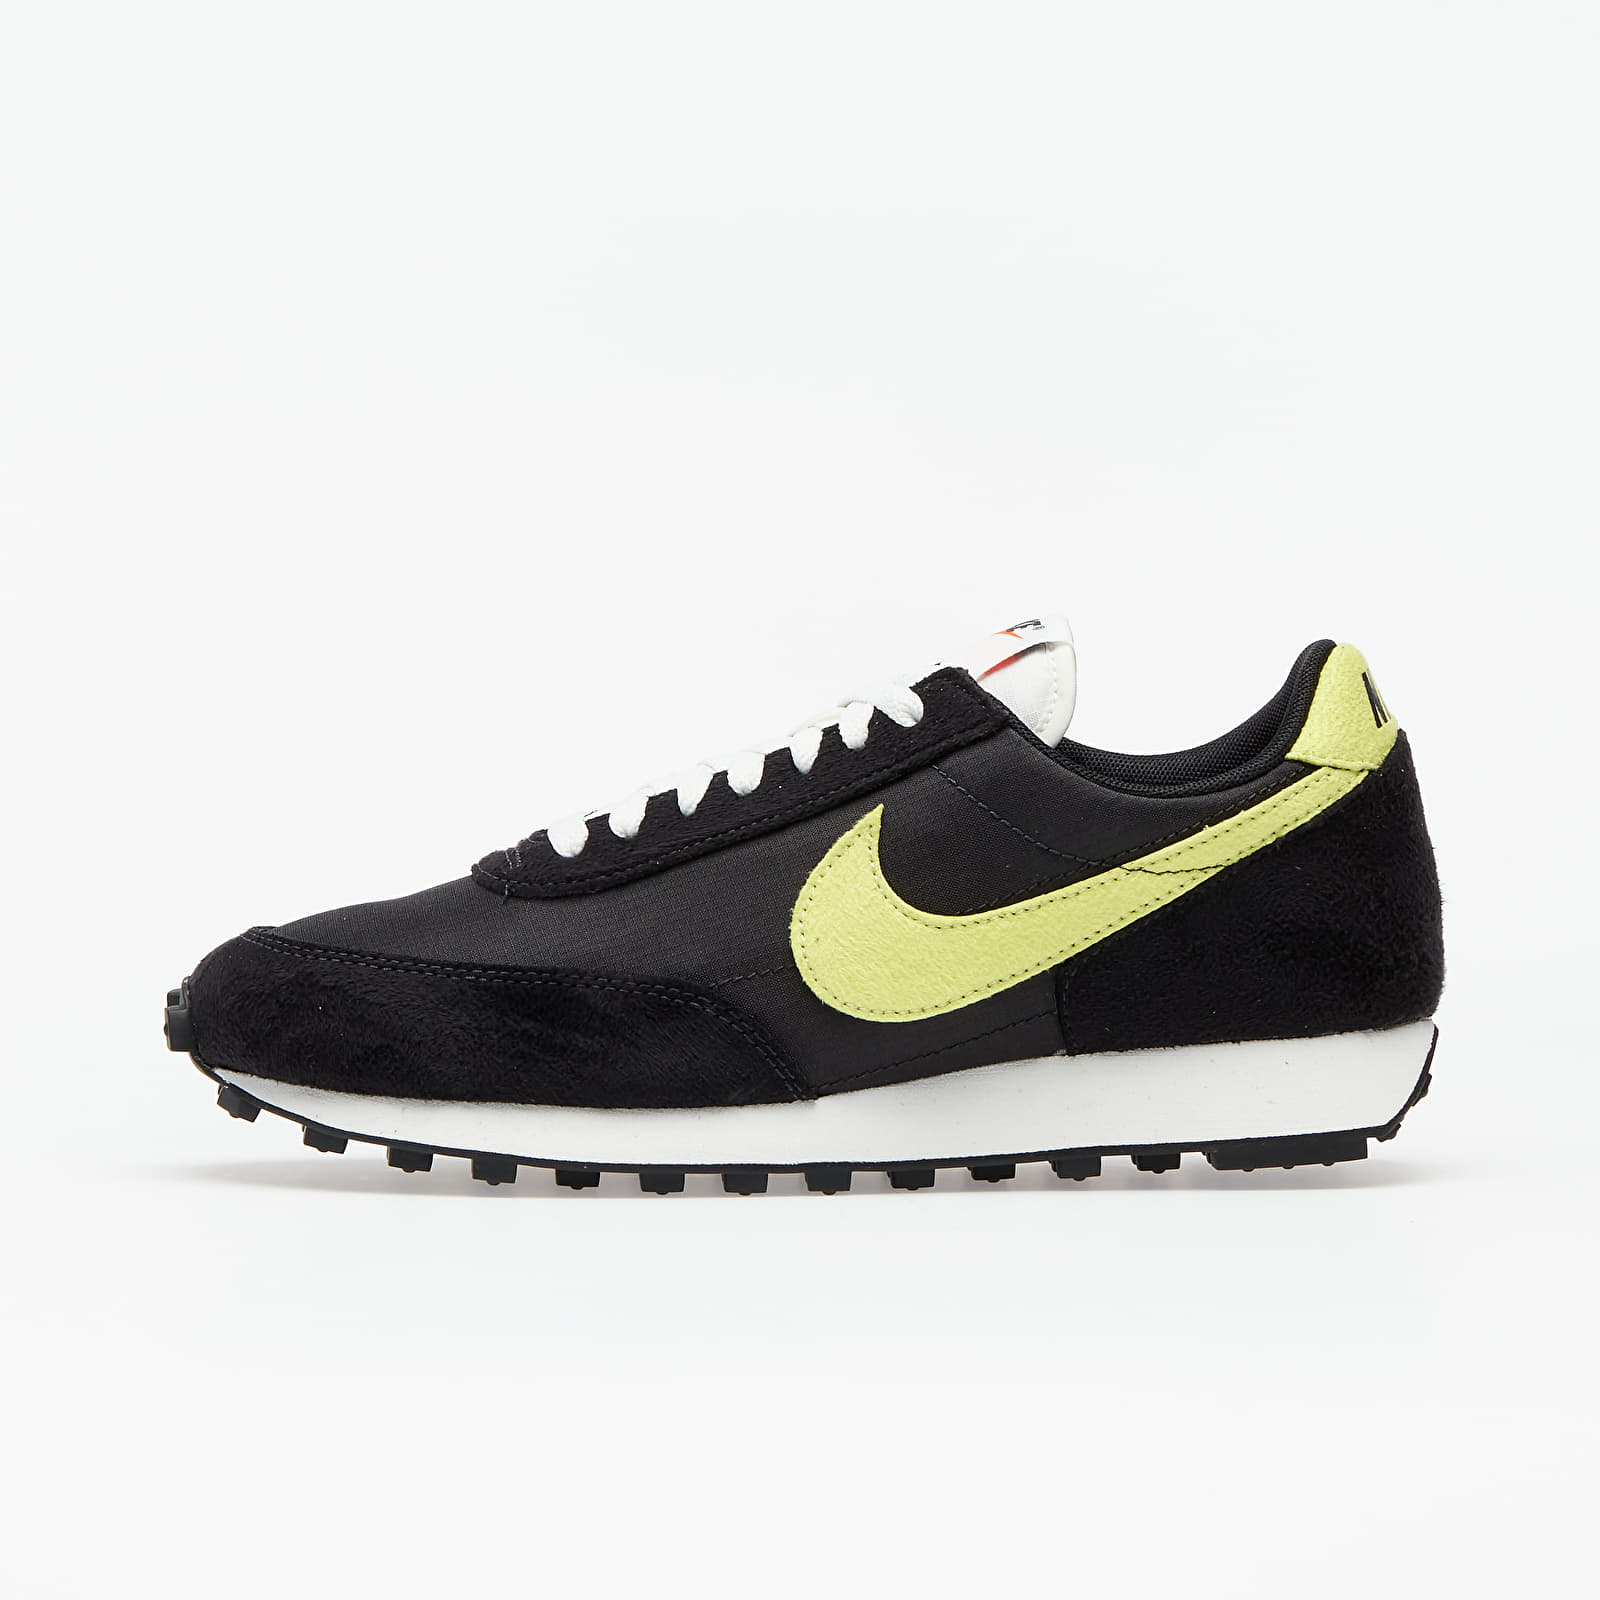 Nike Daybreak SP Black/ Limelight-Off Noir-Summit White EUR 44.5